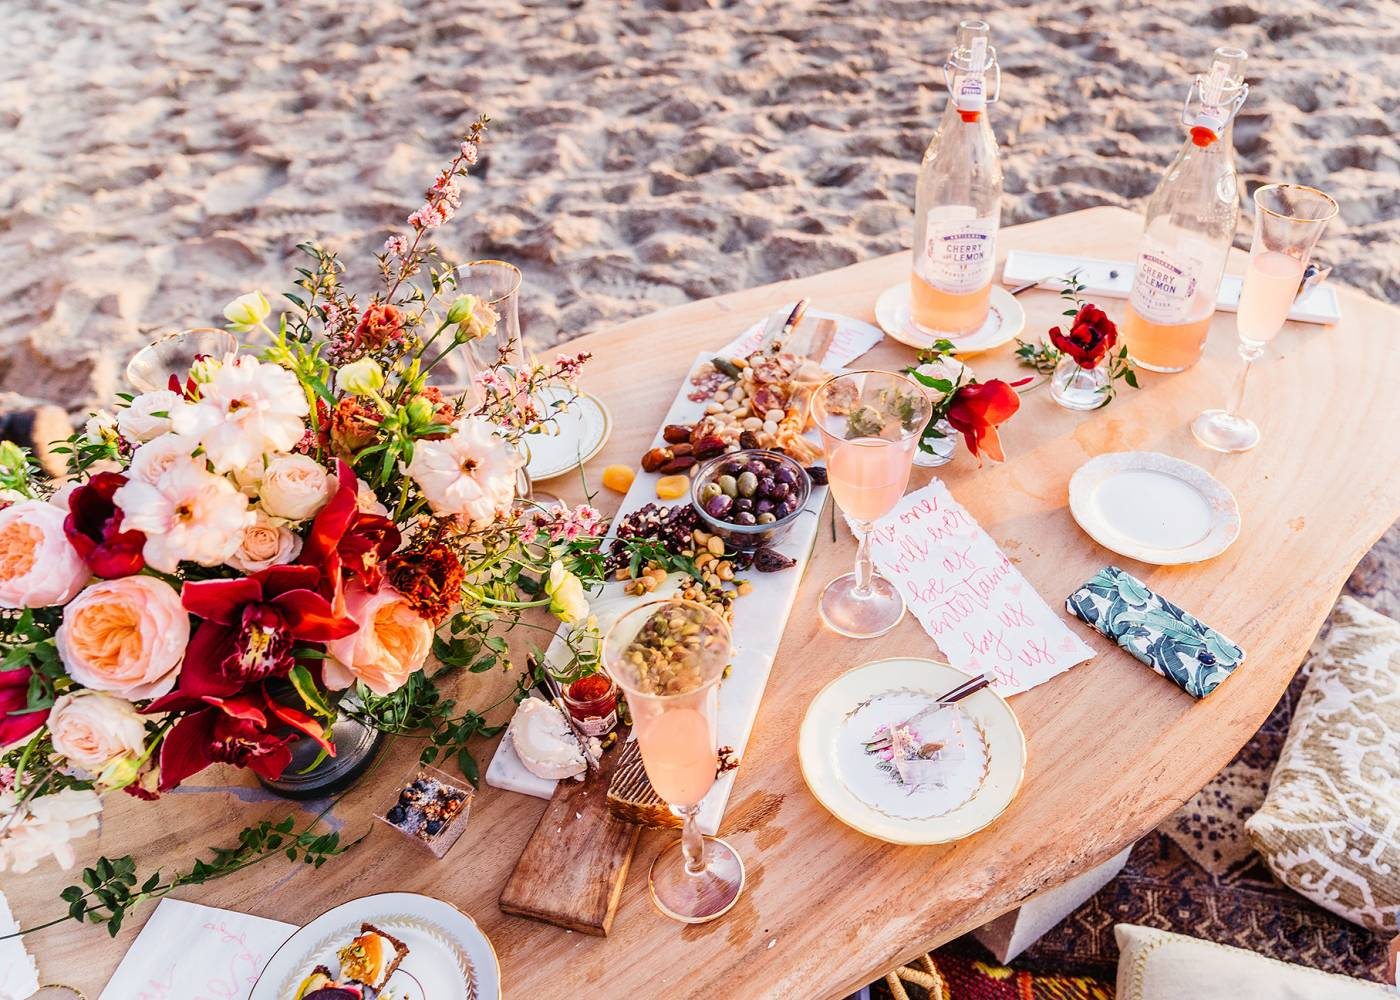 The Most Pinterest Galentine's Day Picnic Ever